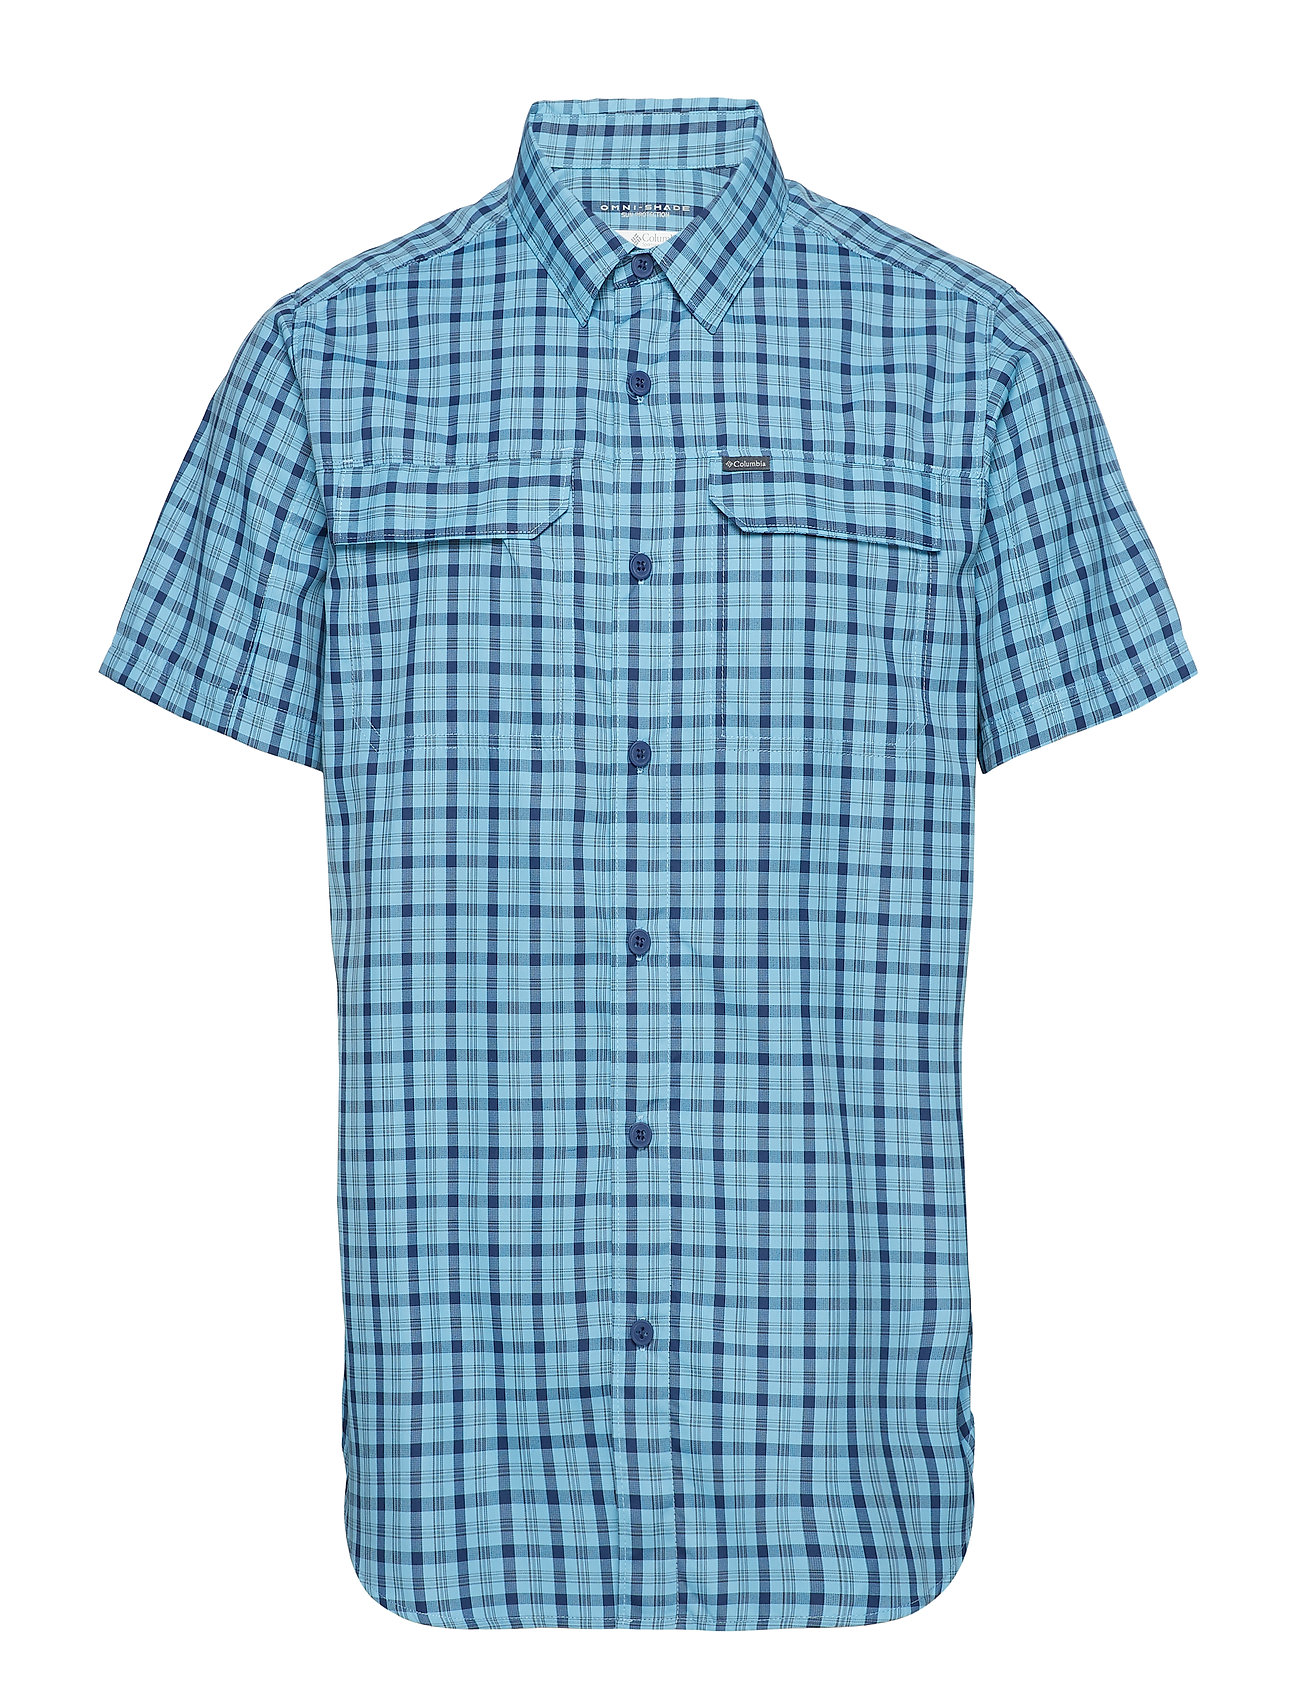 s Silver Multi 0 Plaid 2 NavyColumbia Ridge� S Shirtcollegiate bf6gy7